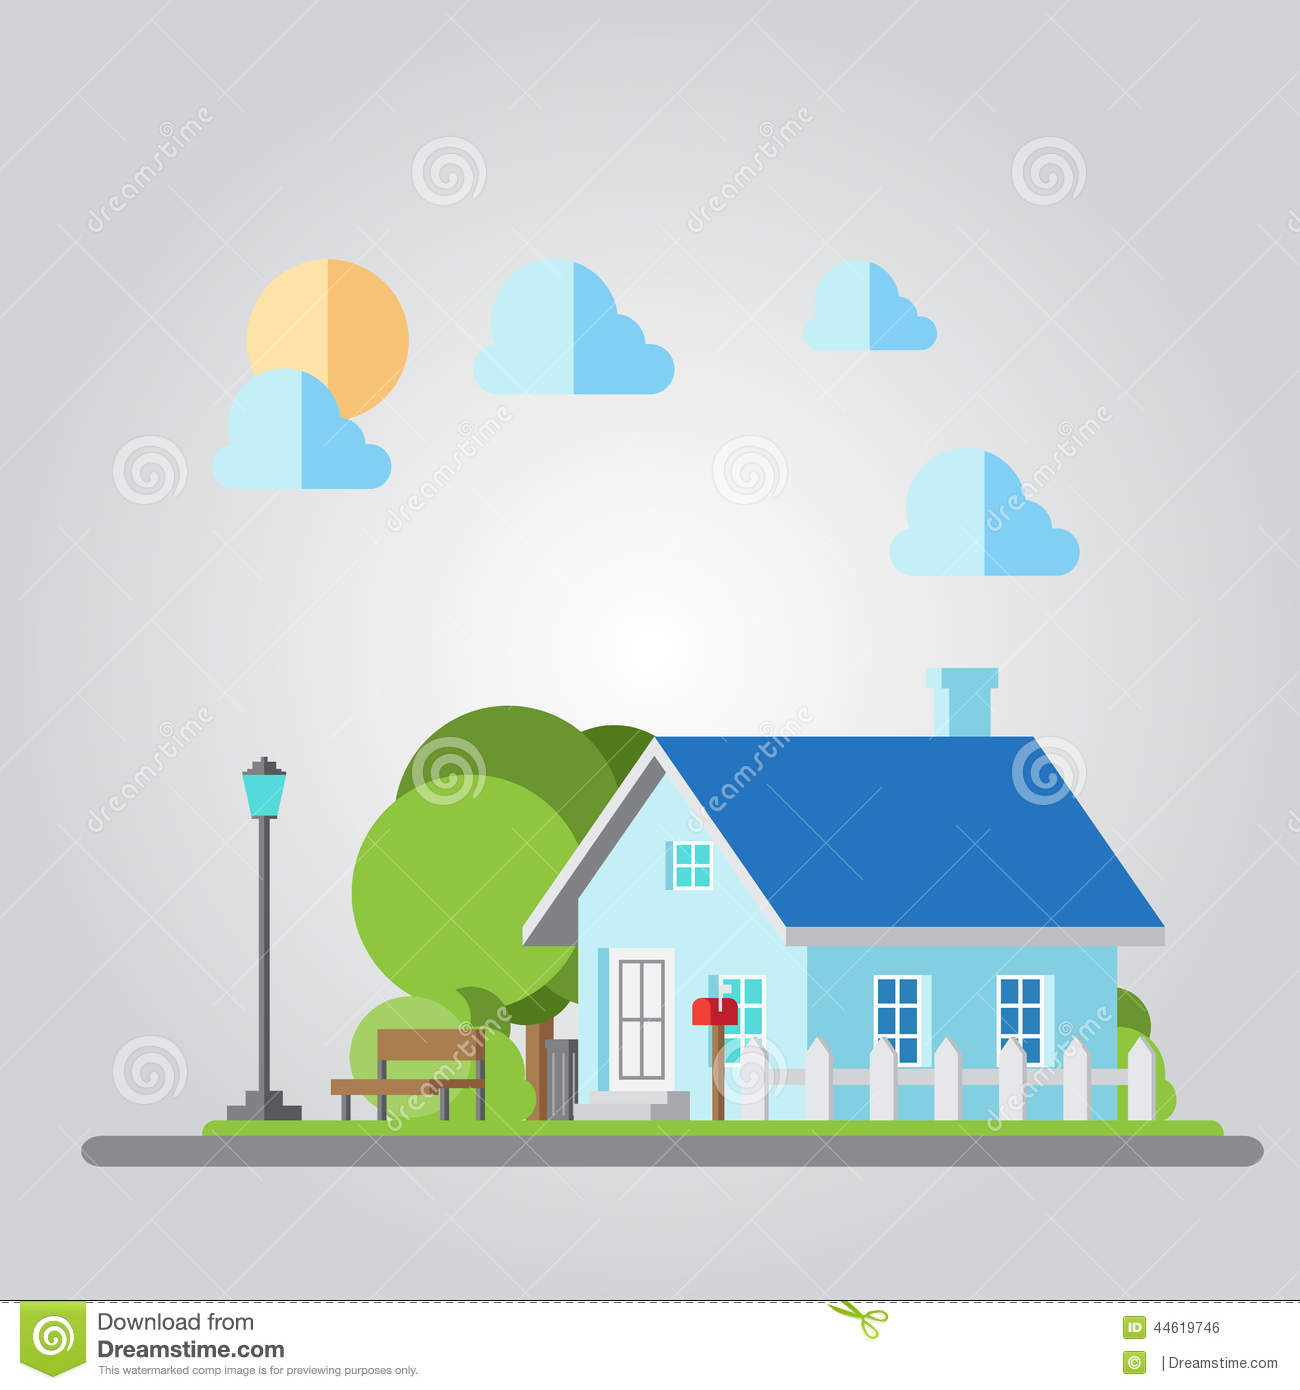 Flat Design Countryside House Illustration Stock Vector ... on 3 bed design, flat pool, flat flowers, flat furniture, flat lighting, 2 bedroom design, flat space, flat chair, roofing style roof design, flat wall, lodge design, flat painting, flat decor, flat art, flat storage, flat kitchen, bungalow design, apartment design, flat houses in trinidad, flat photography,